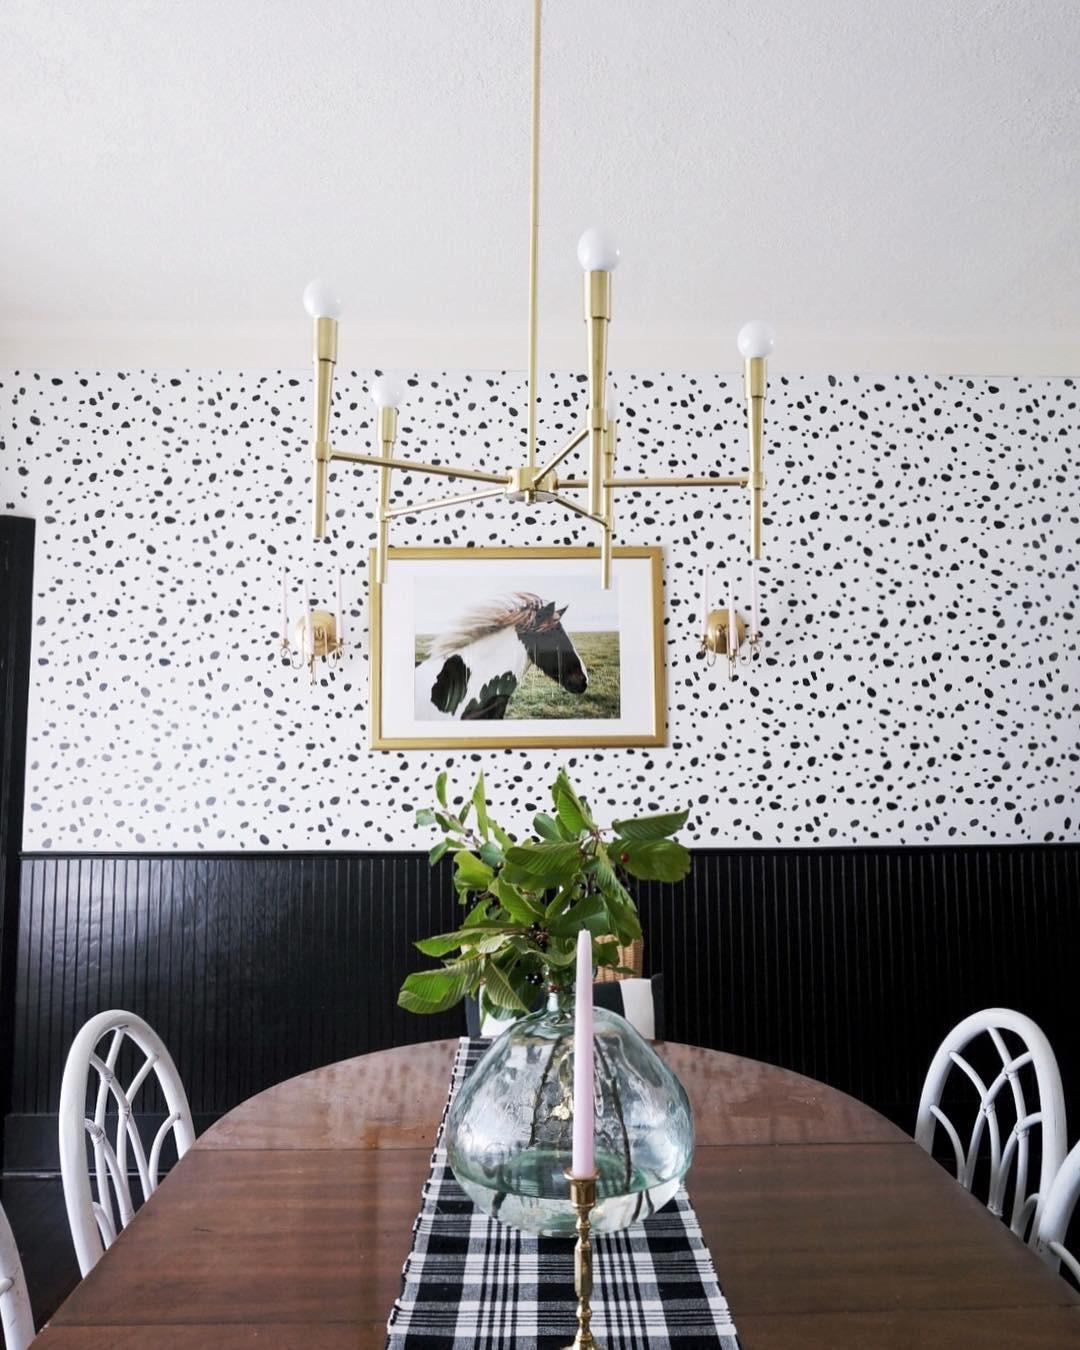 Diy Stenciled Dining Room Has Look